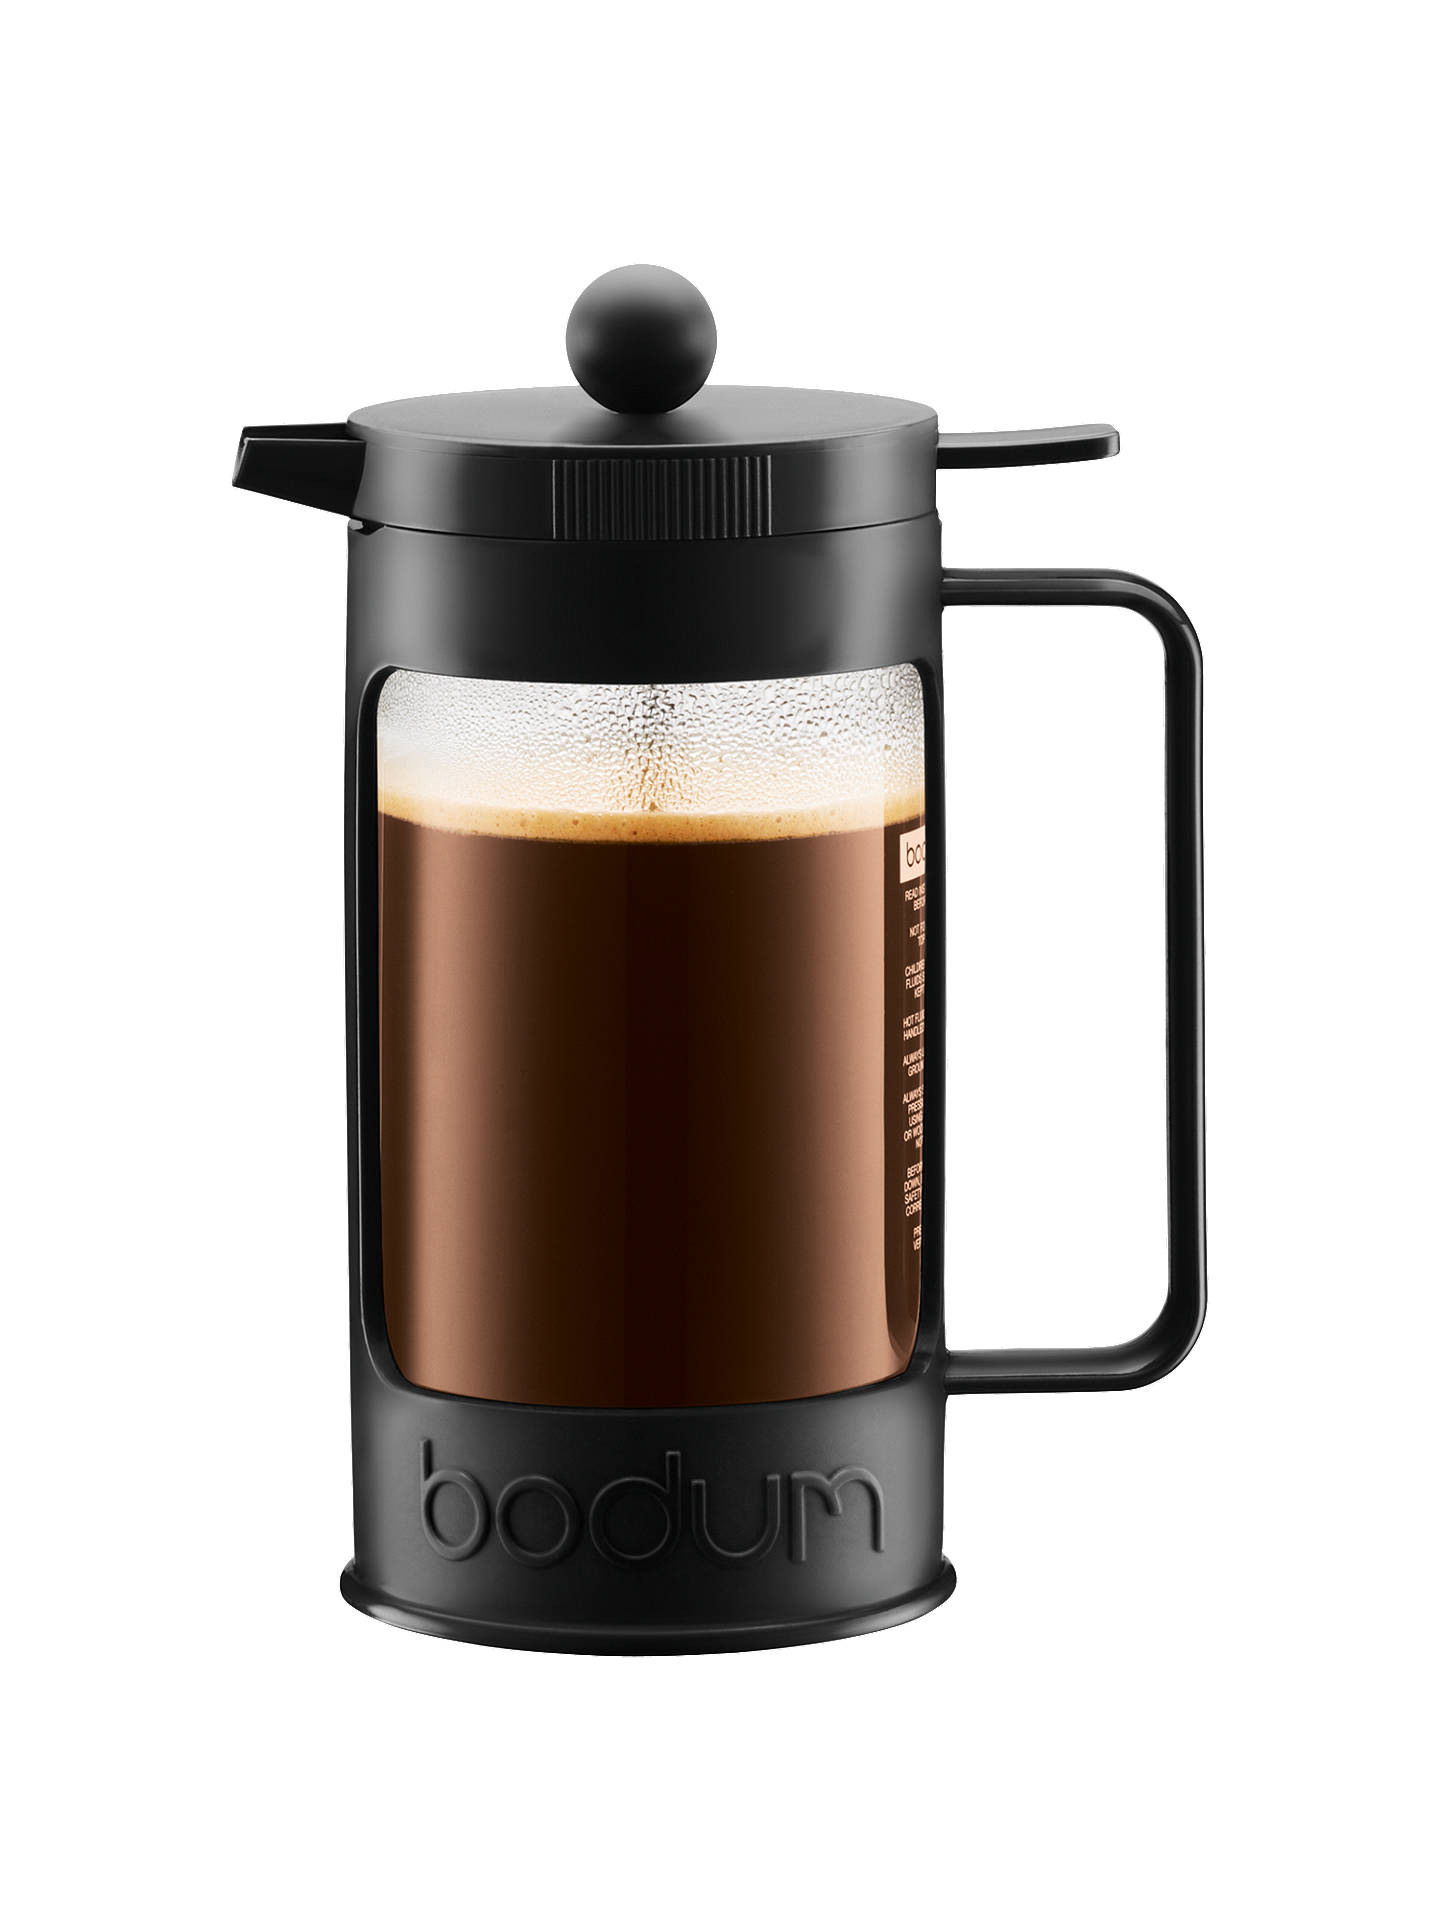 Buy BODUM Bean 4 Cup French Press Coffee Maker, 1L, Black Online at johnlewis.com